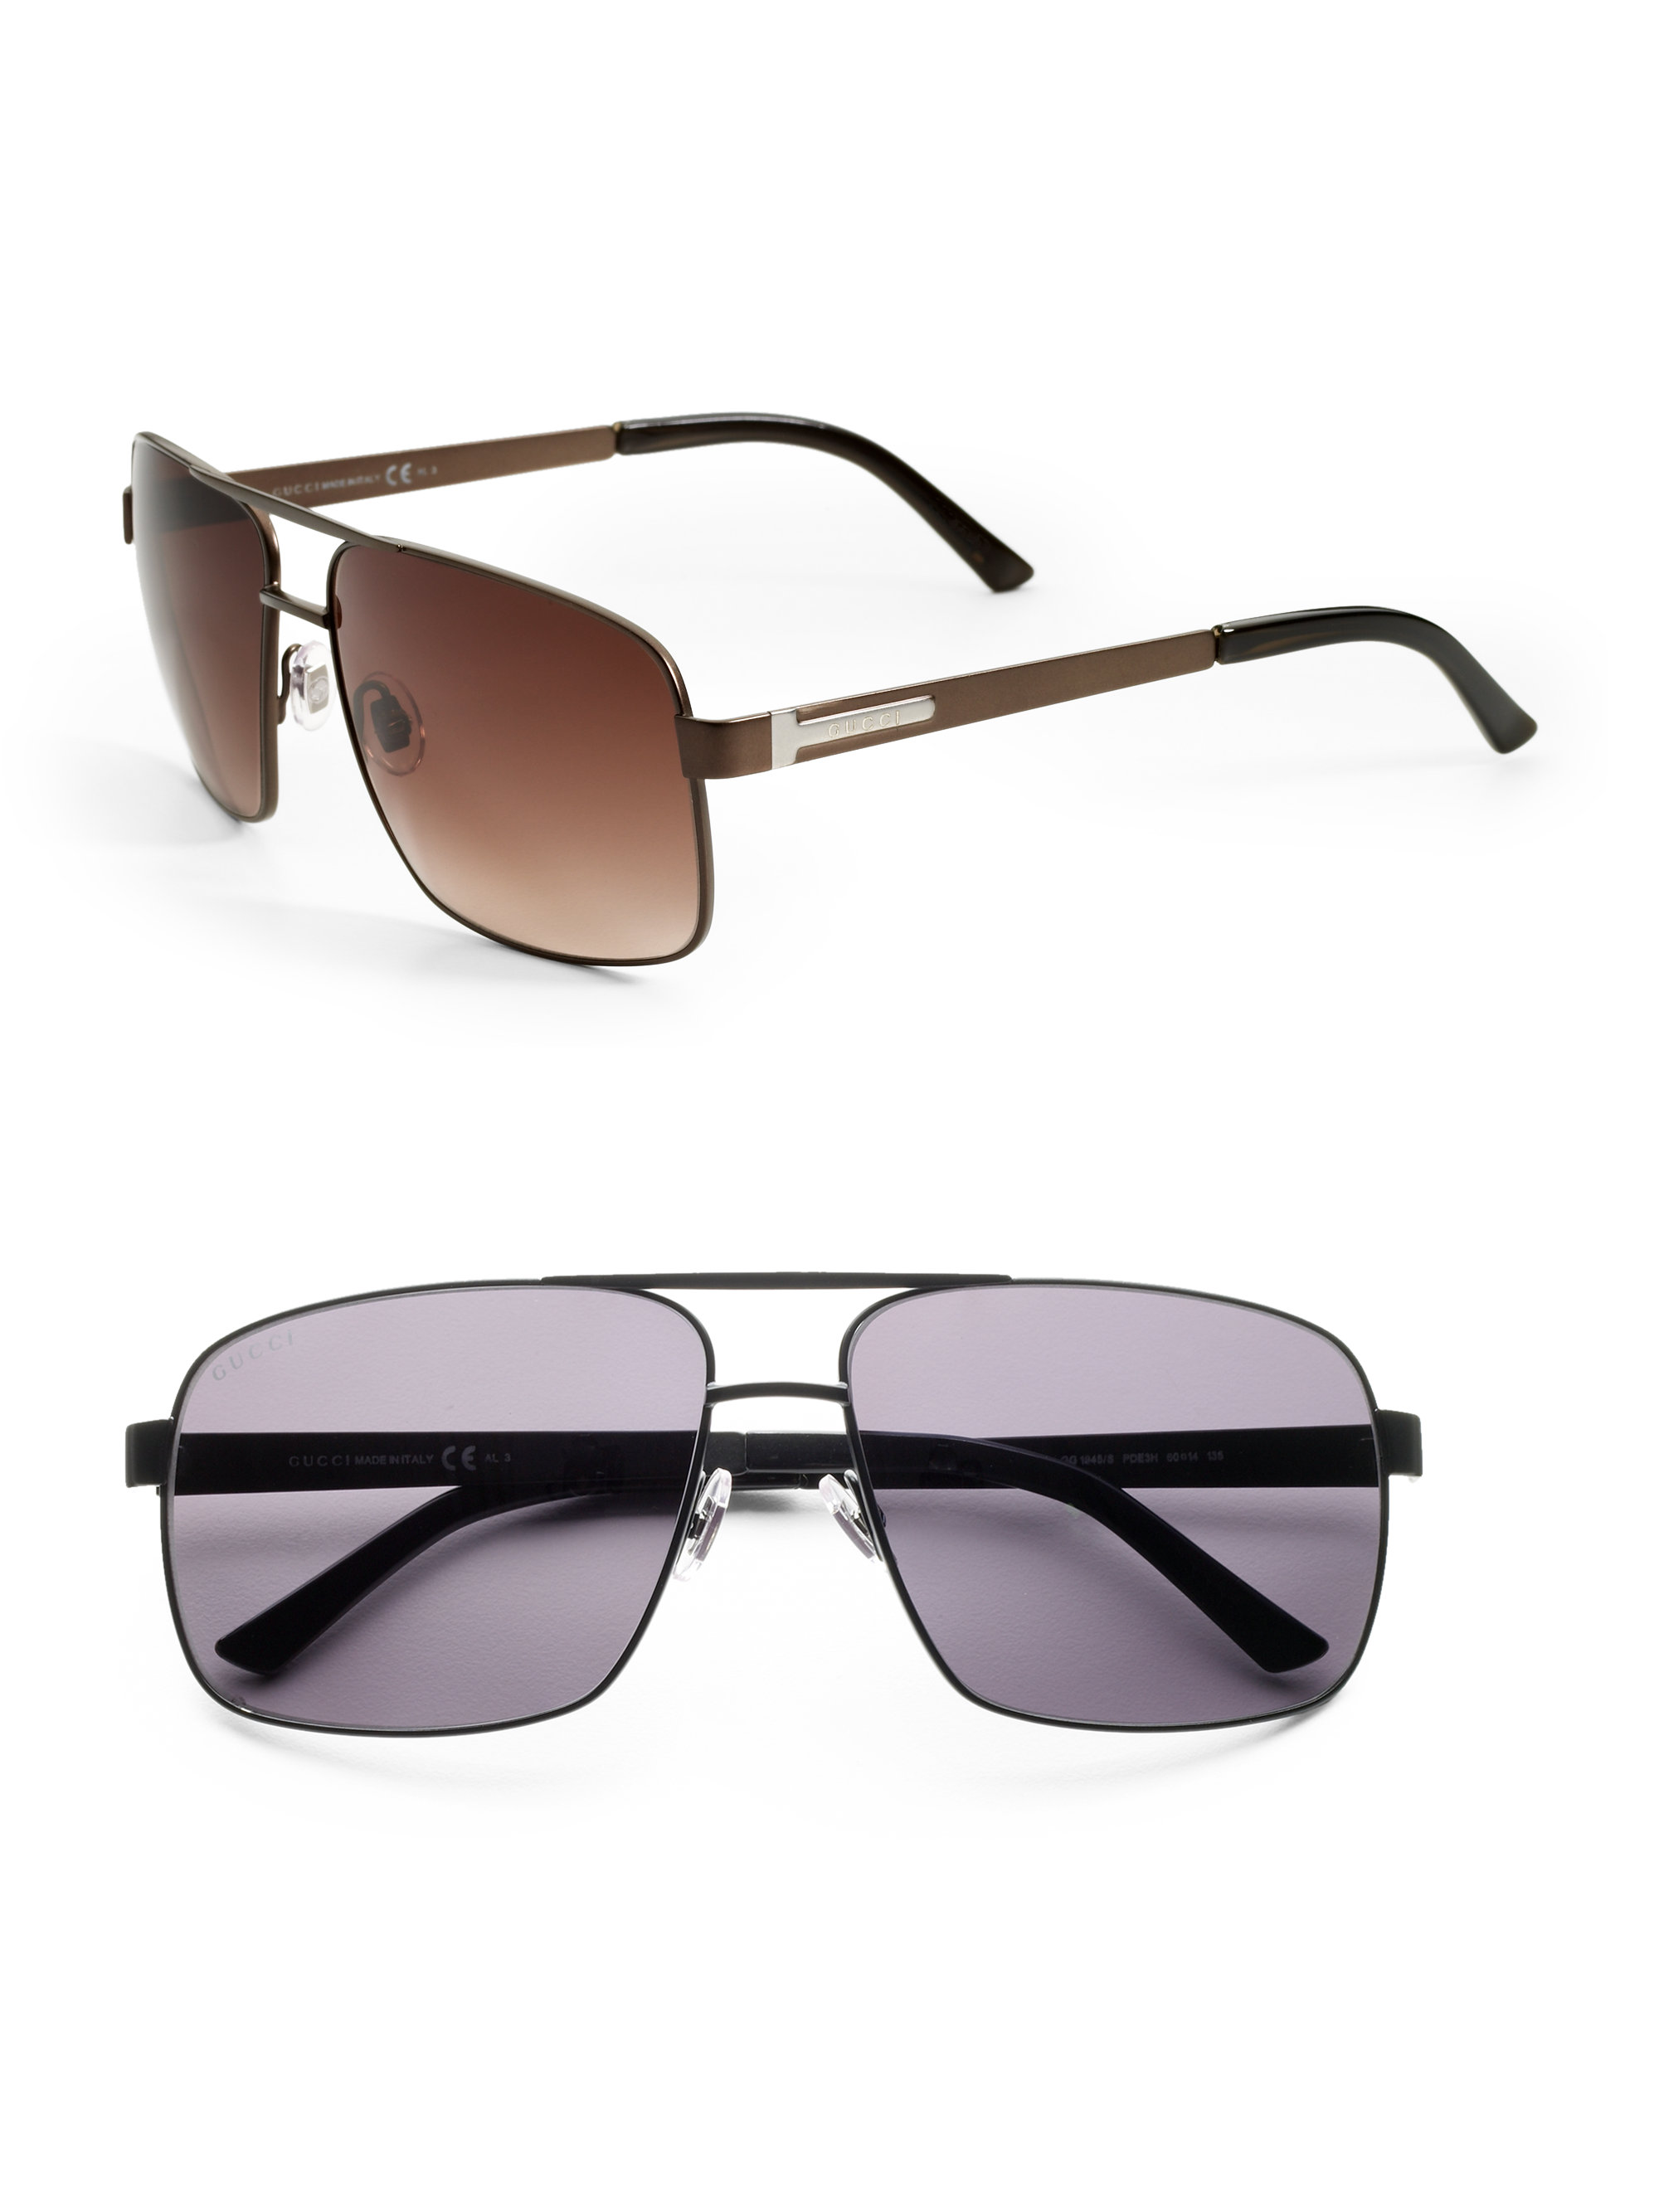 4559e769bf7 Gucci Wayfarer Sunglasses Men